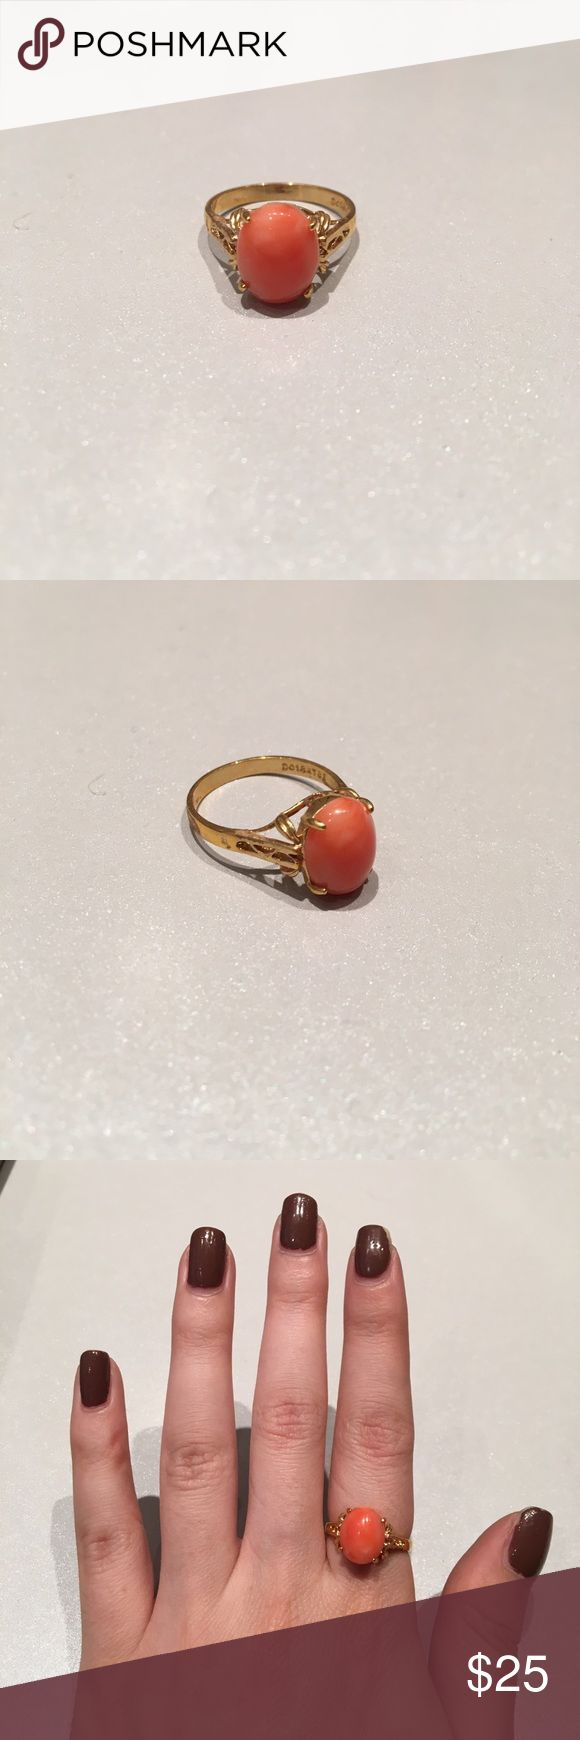 Gold Ring with Orange Stone Gold Ring with Orange Stone (exact size is unknown, but it's probably a 6 or a 7) Jewelry Rings